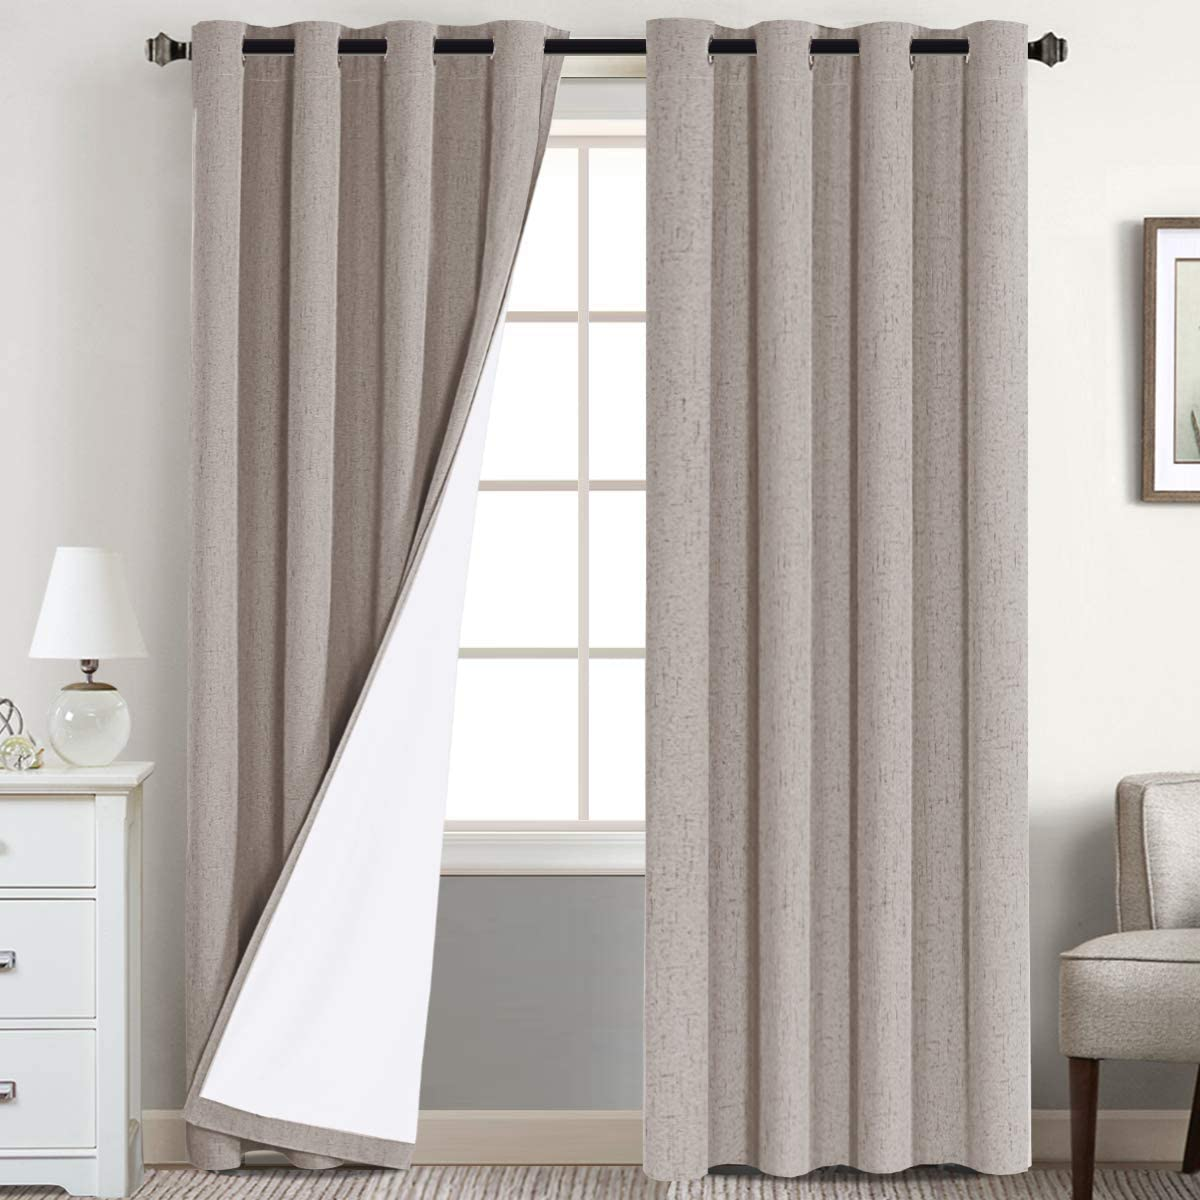 100% Blackout Waterproof Curtains Home Decorations Linen Thermal Insulated Solid Grommet Top Blackout Living Room Curtains/Drapes for Bedroom/Patio (2 Panels 52 x 108 Inches, Taupe)